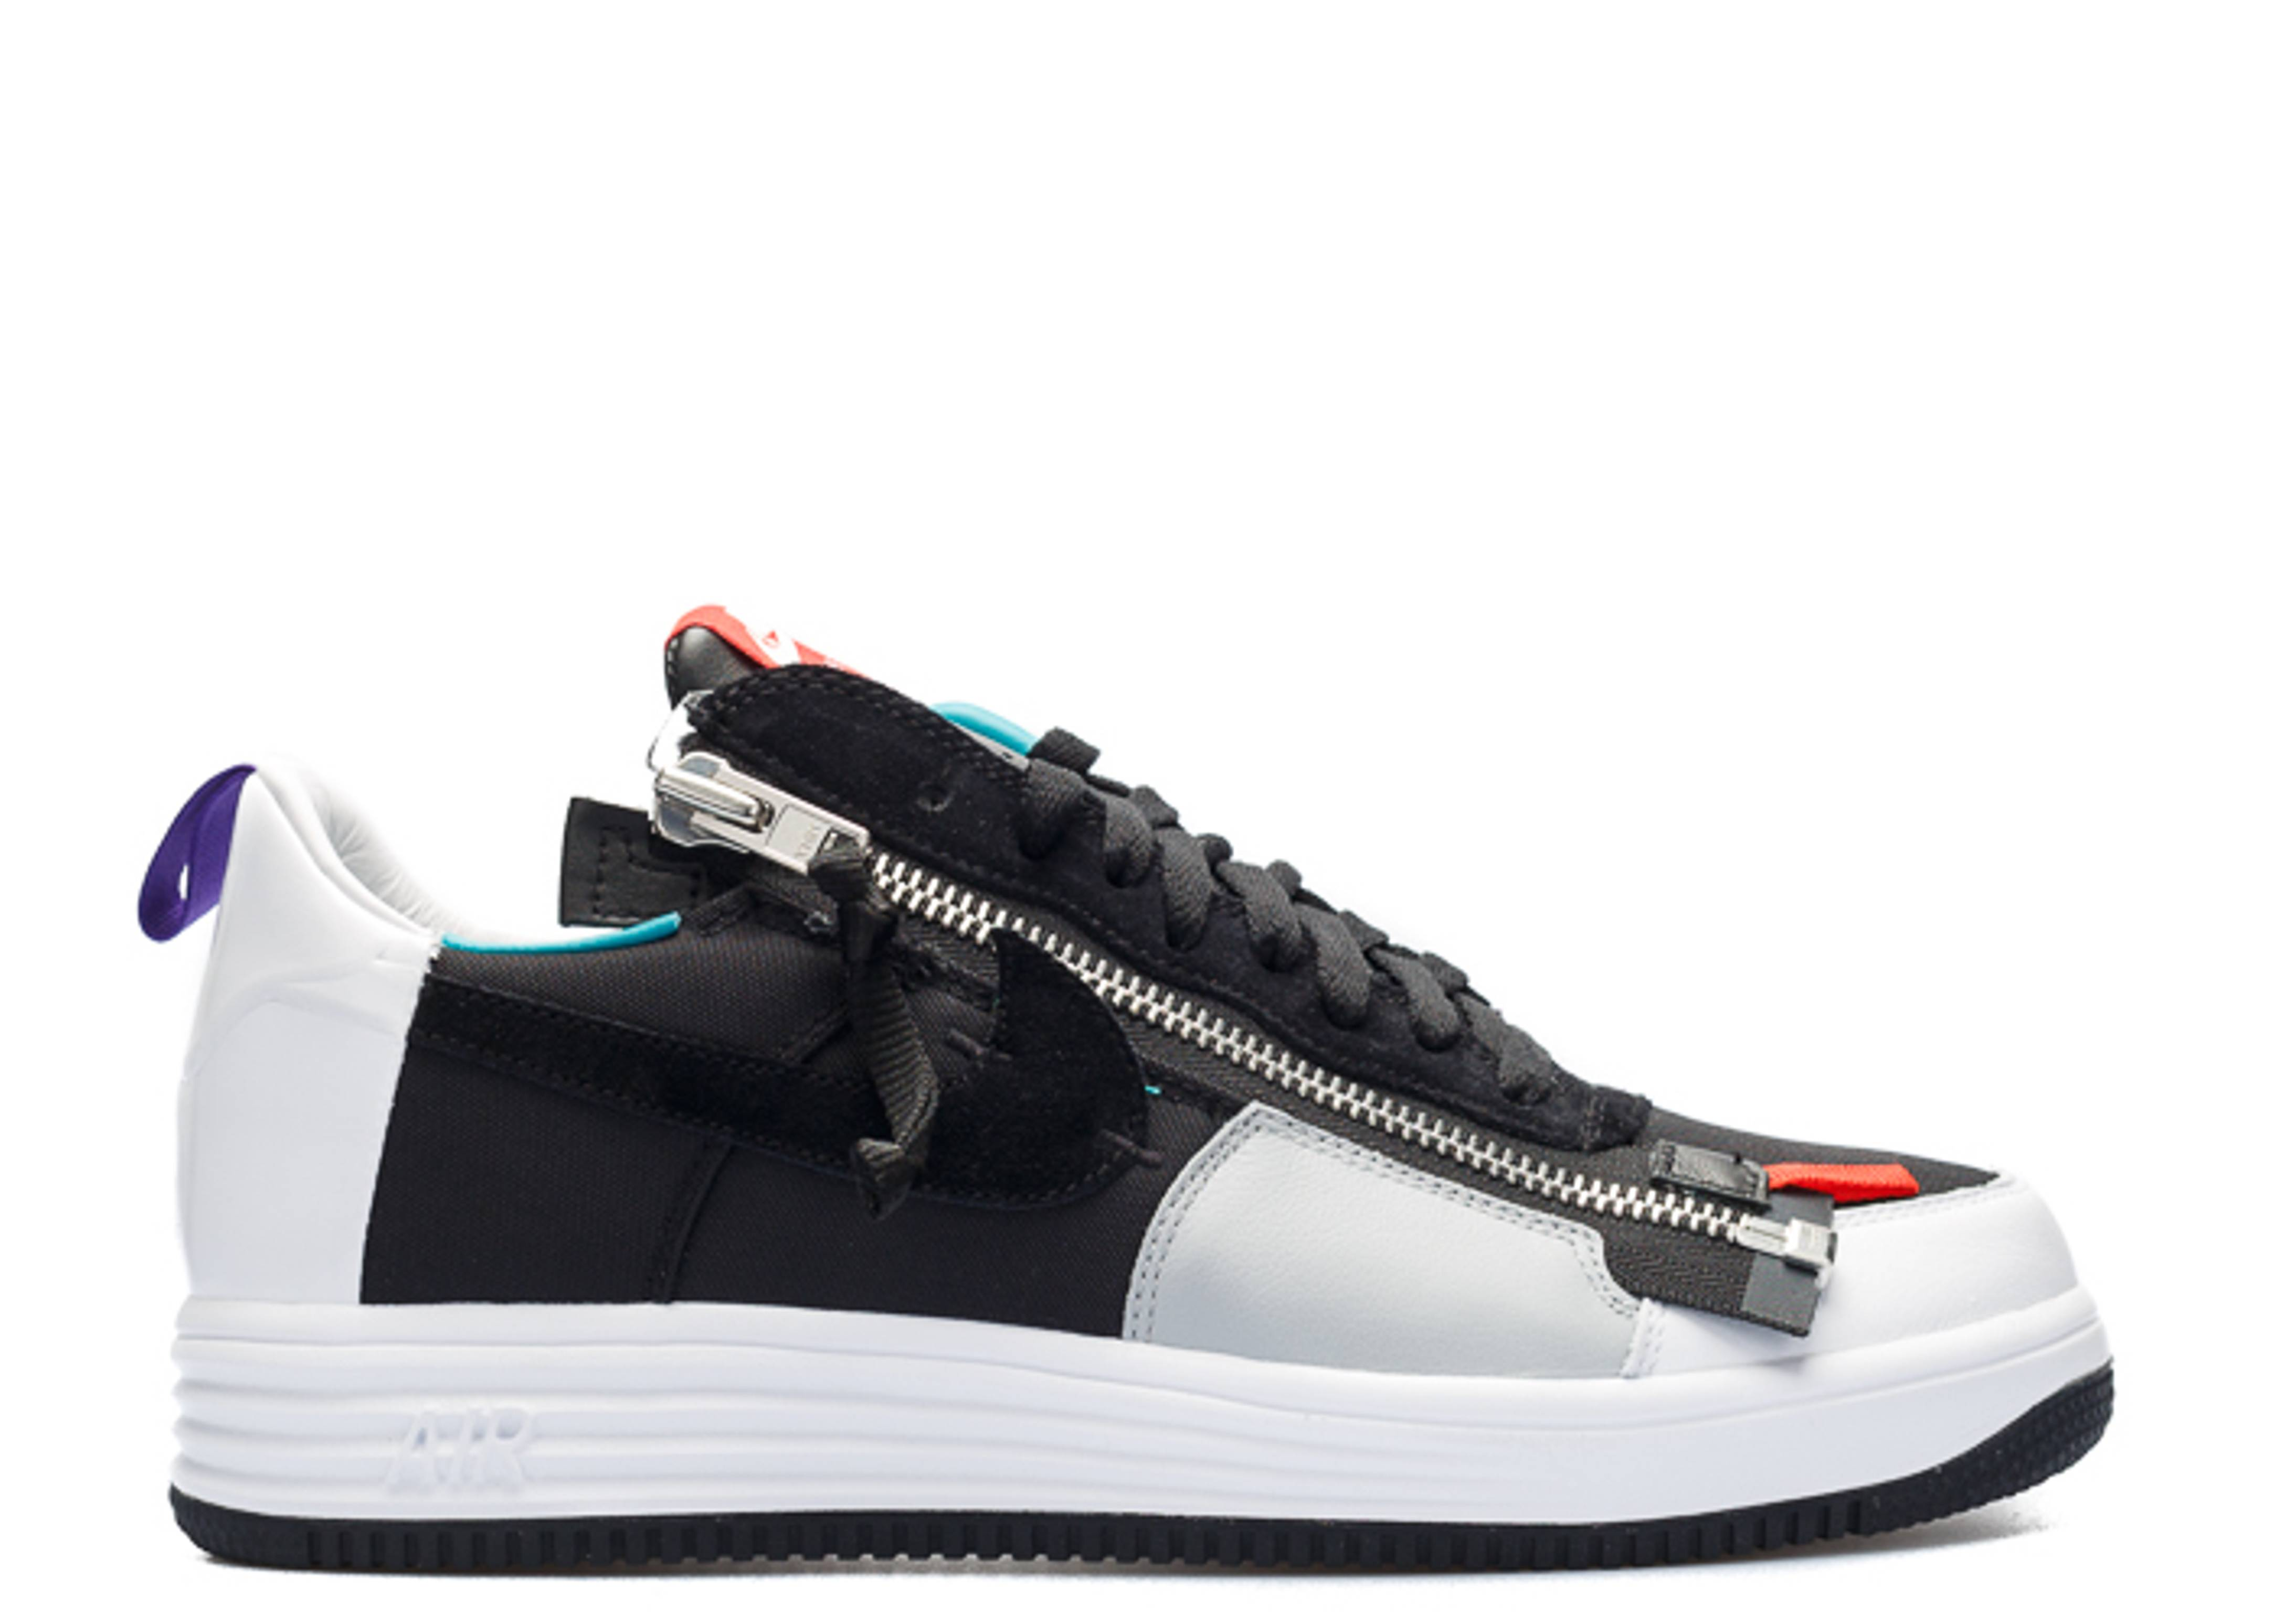 lunar force 1 sp / acronym